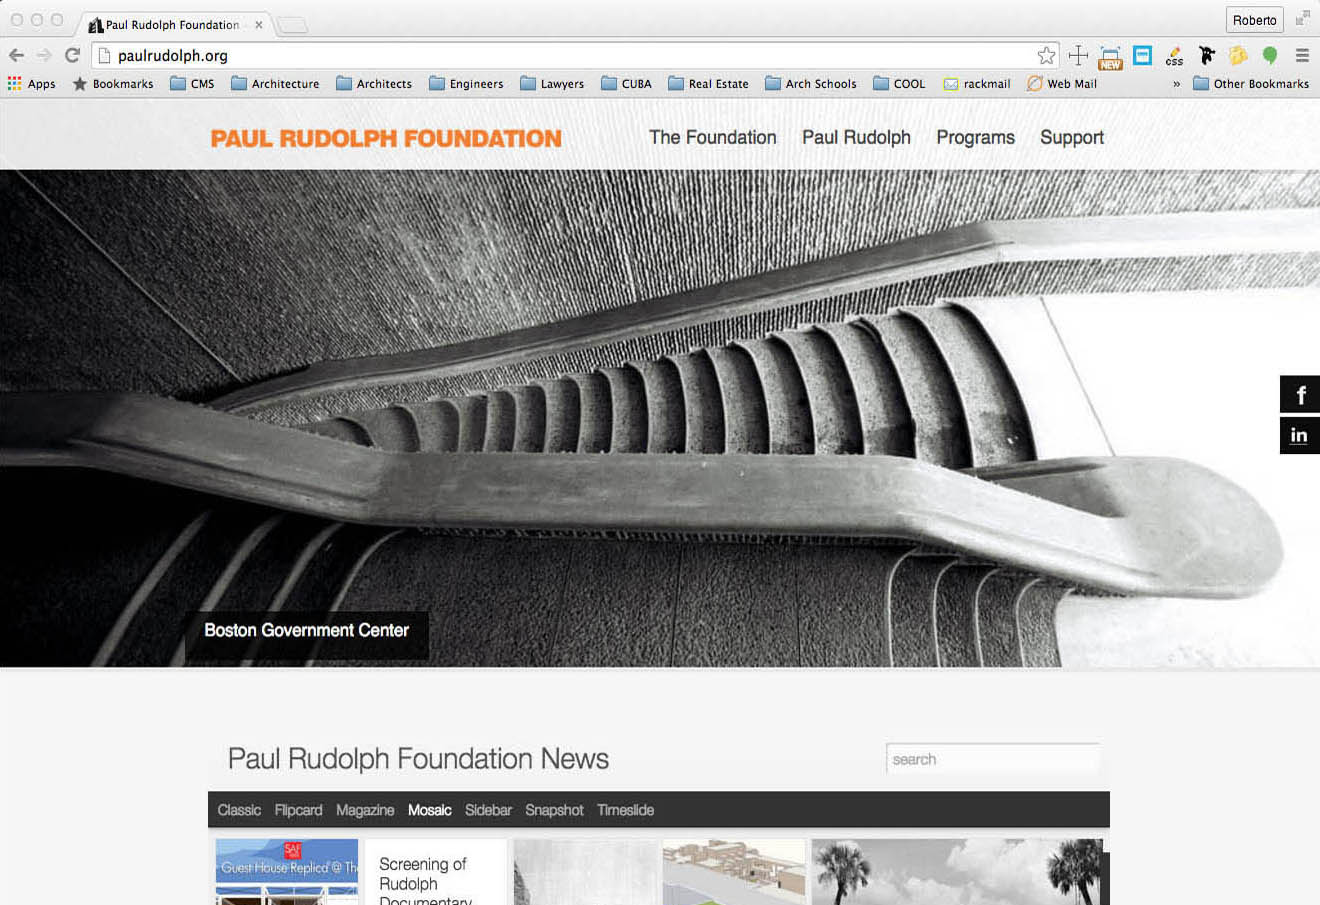 Paul Rudolph Foundation